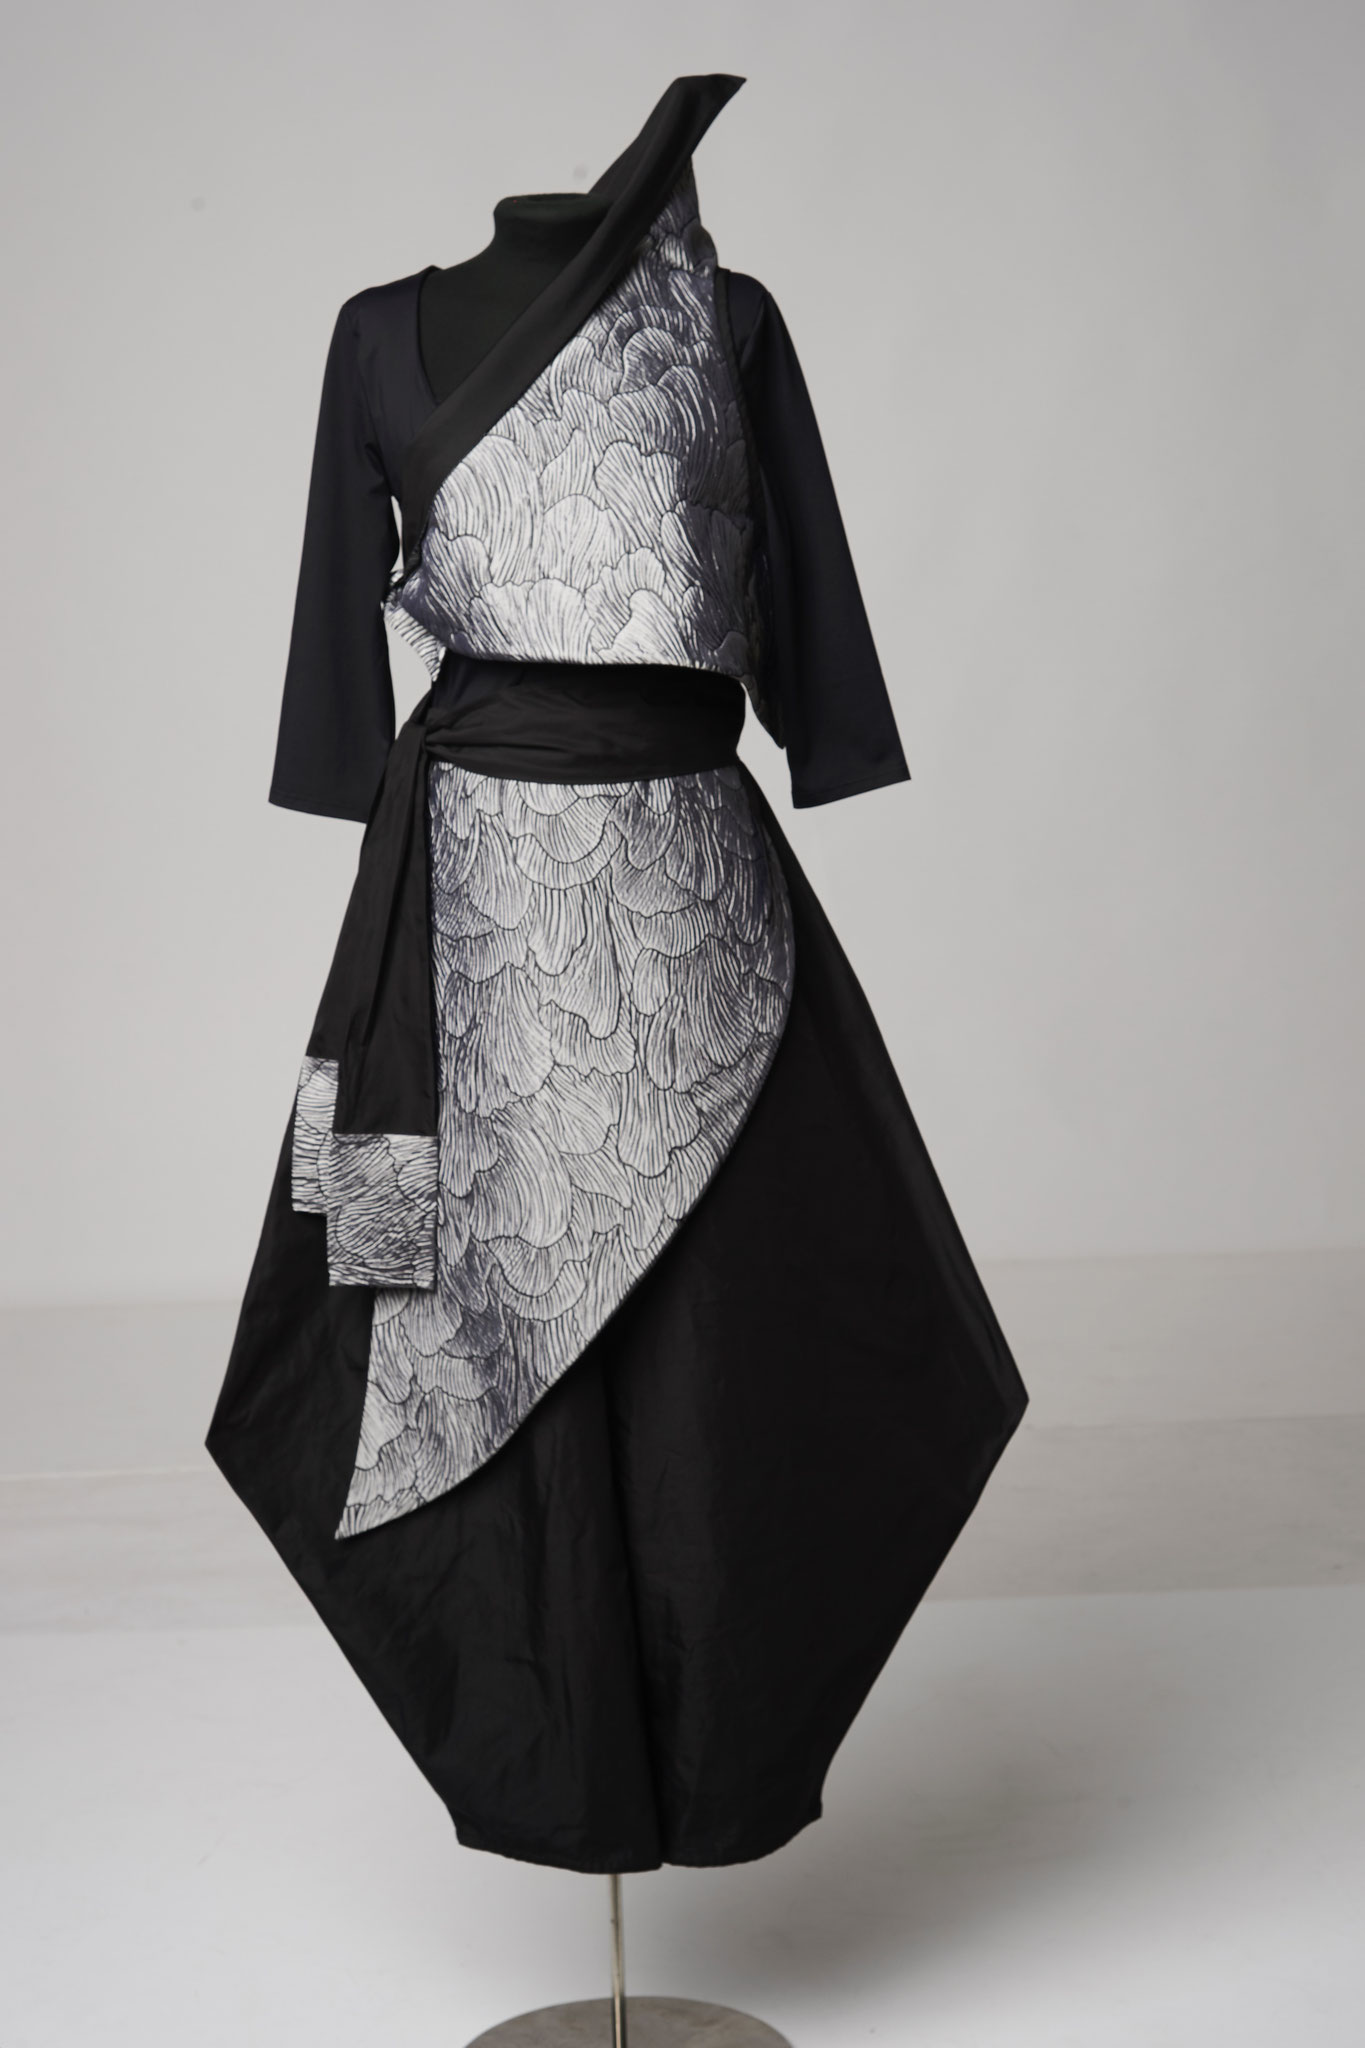 4-piece outfit: pointed trousers, apron, sash, triangle top. Material: silk/viscose/PAN/ microfibre